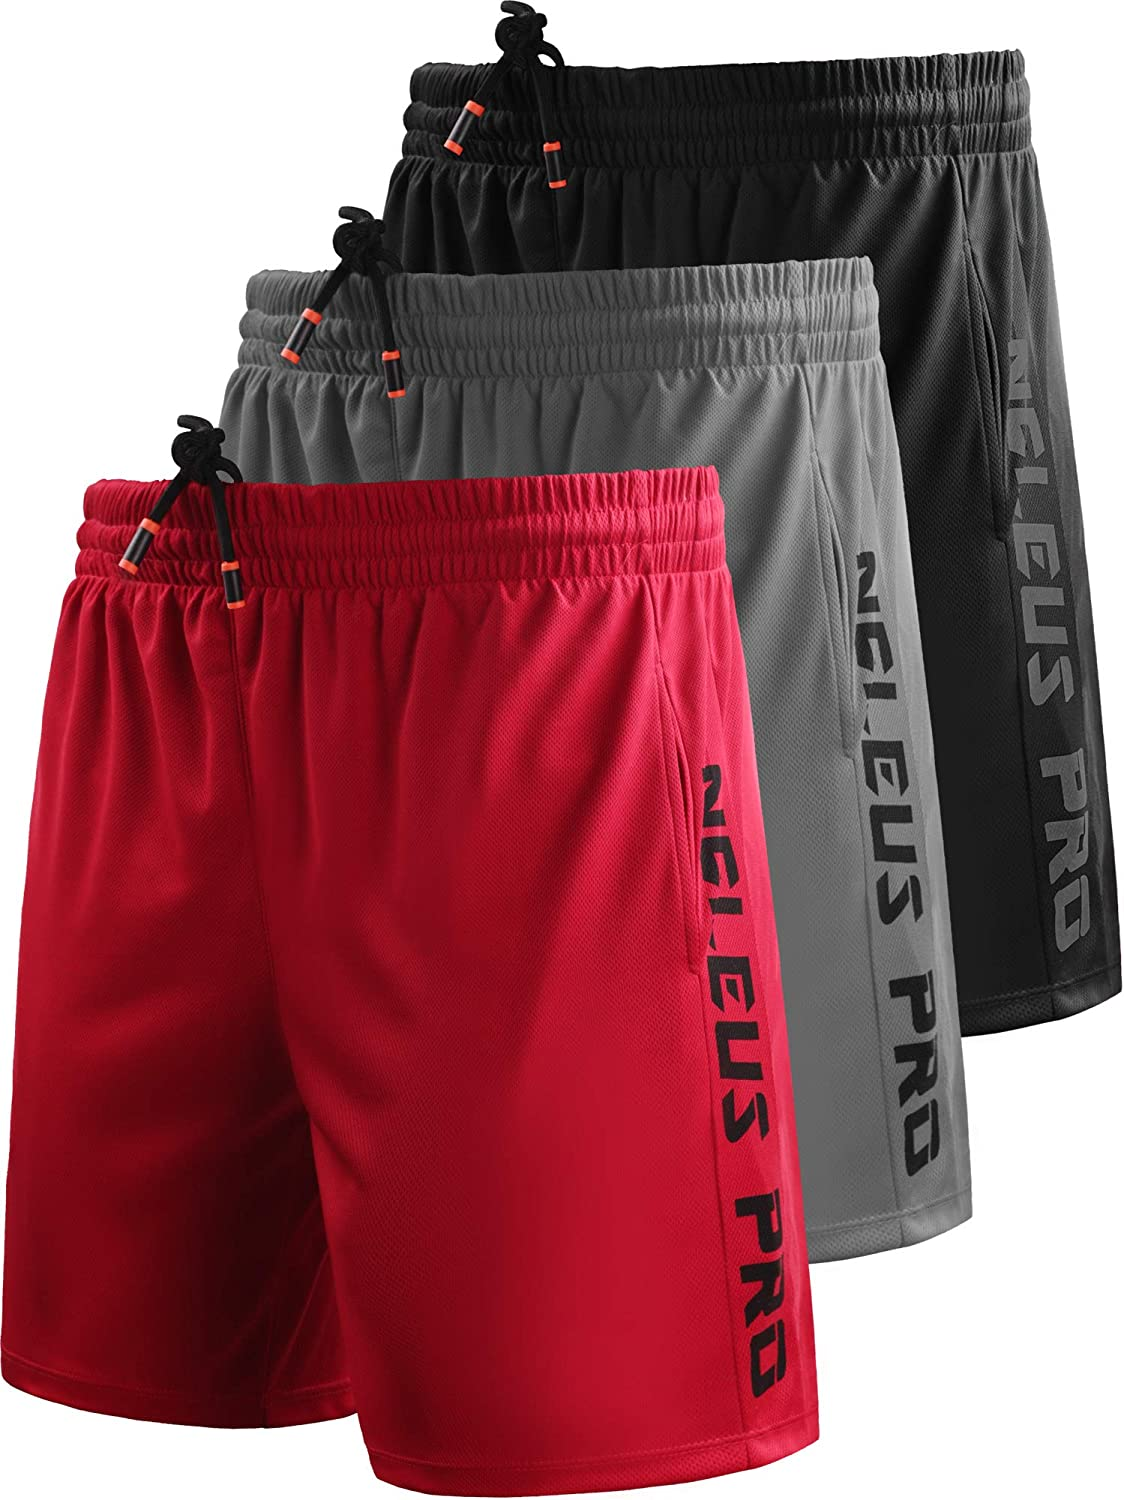 Super-cheap Neleus Men's Lightweight Workout Running Po store with Shorts Athletic